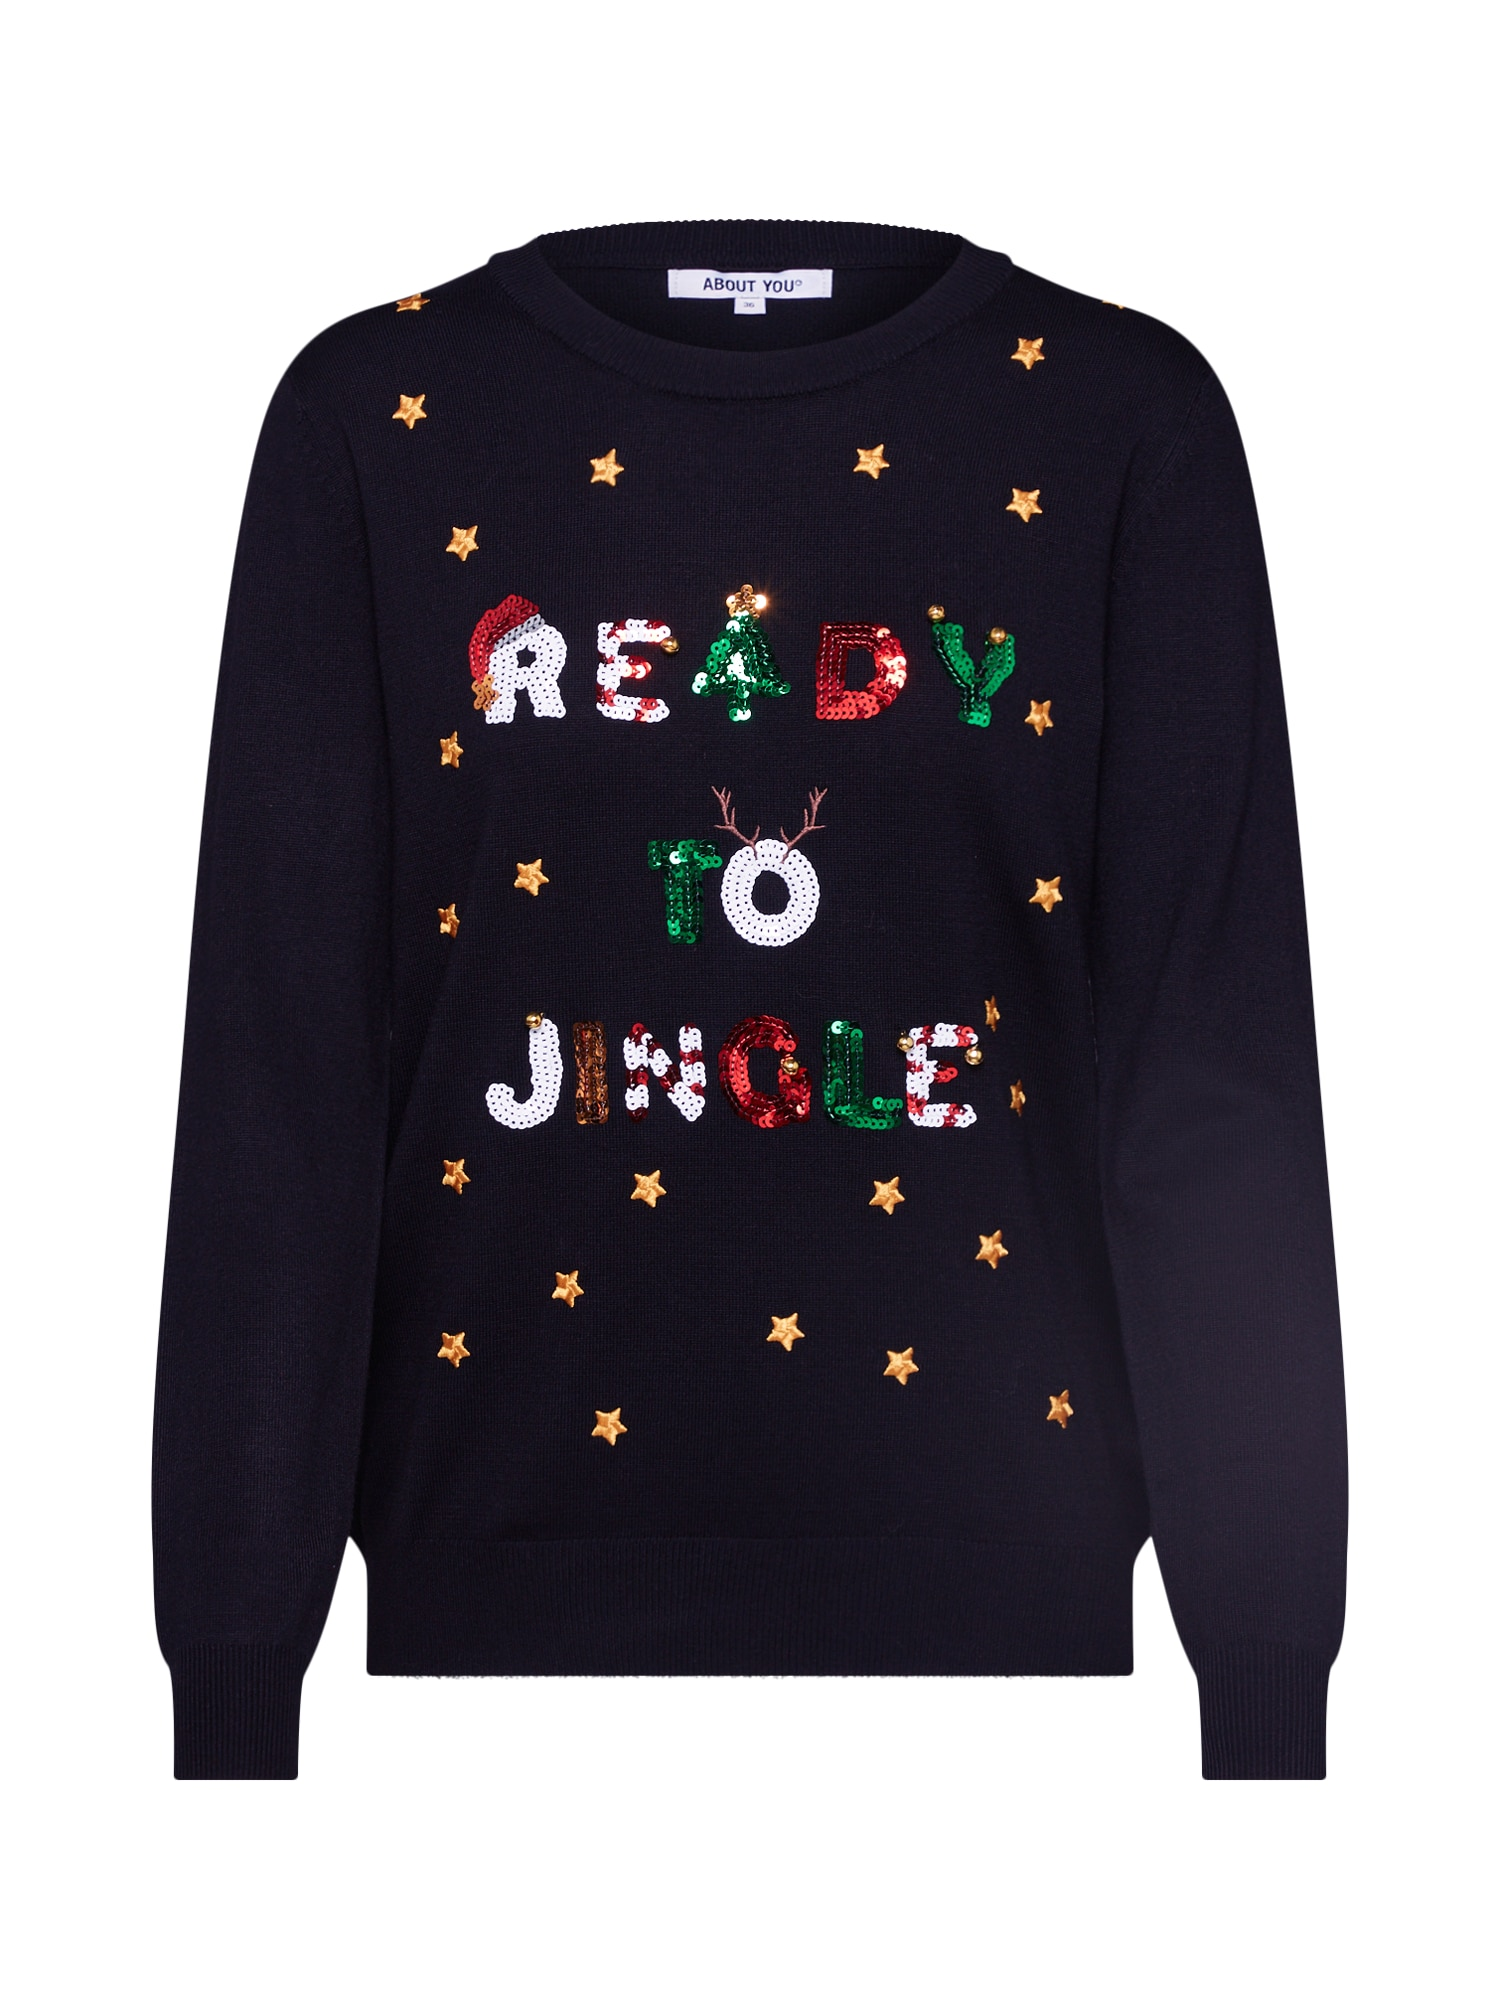 ABOUT YOU Megztinis 'Florentina Christmas Jumper' juoda